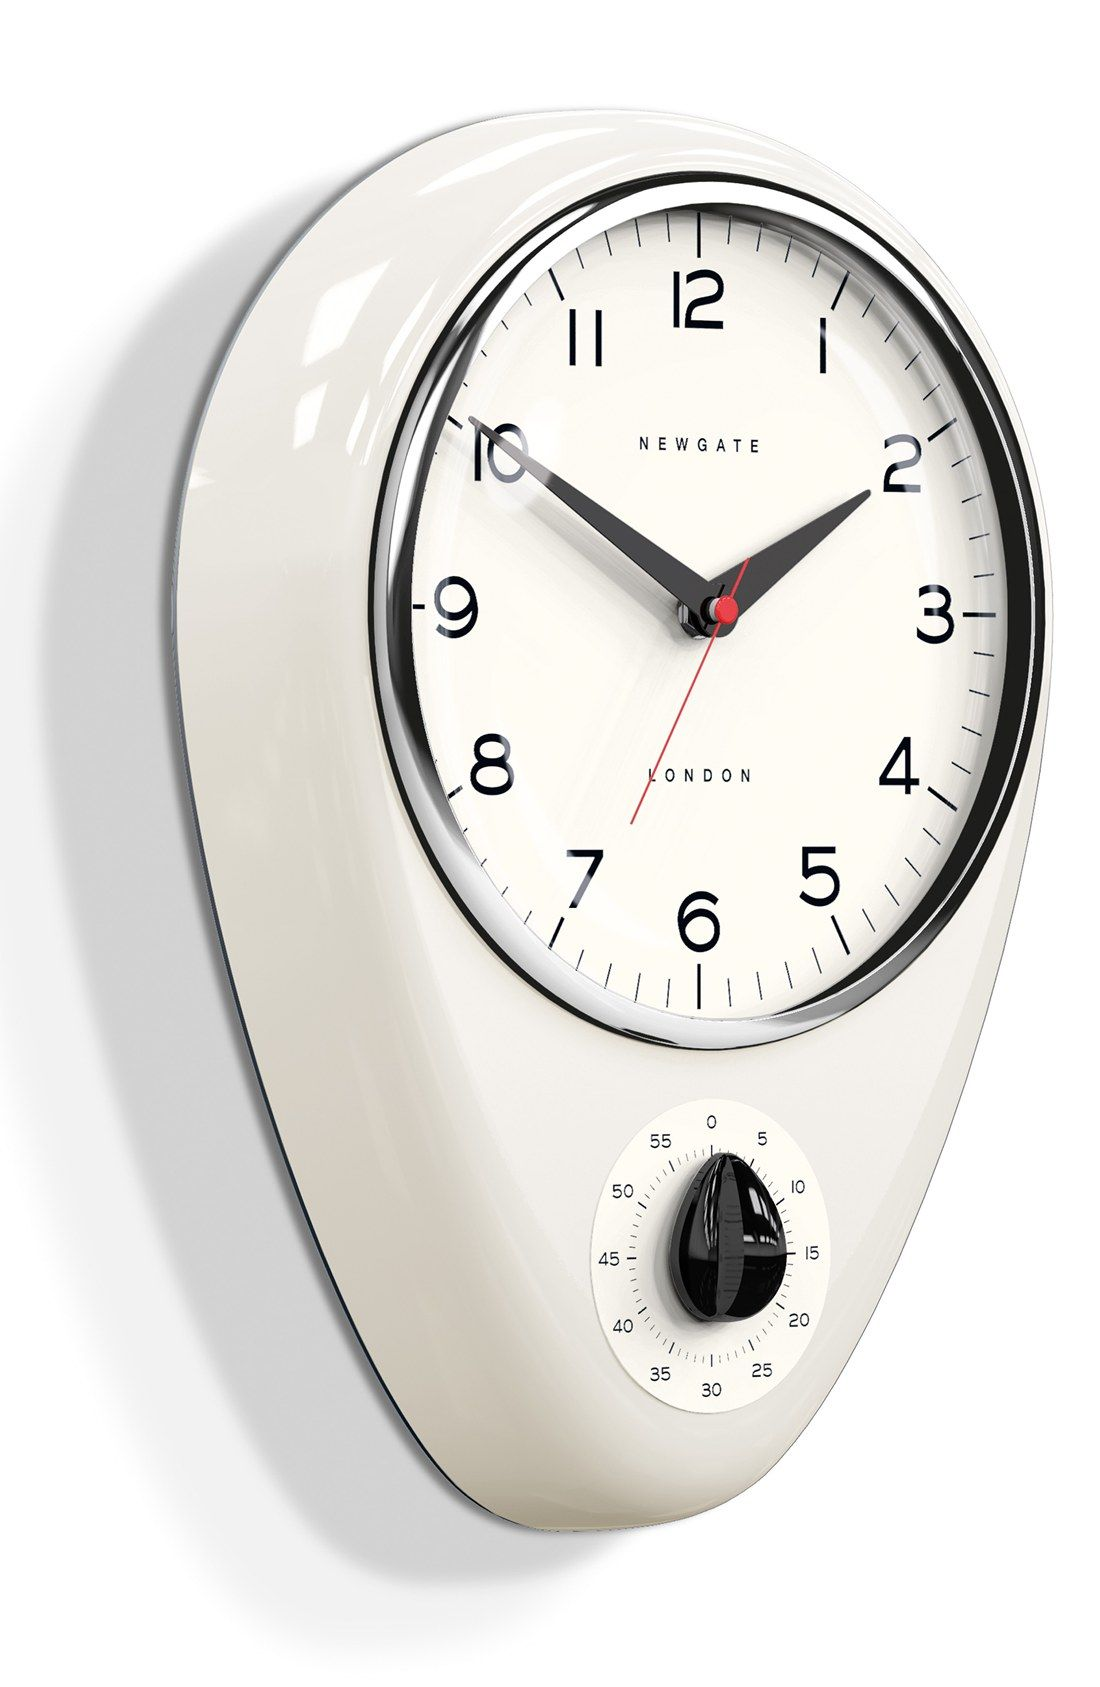 Newgate U0027Discoveryu0027 Wall Clock U0026 Kitchen Timer